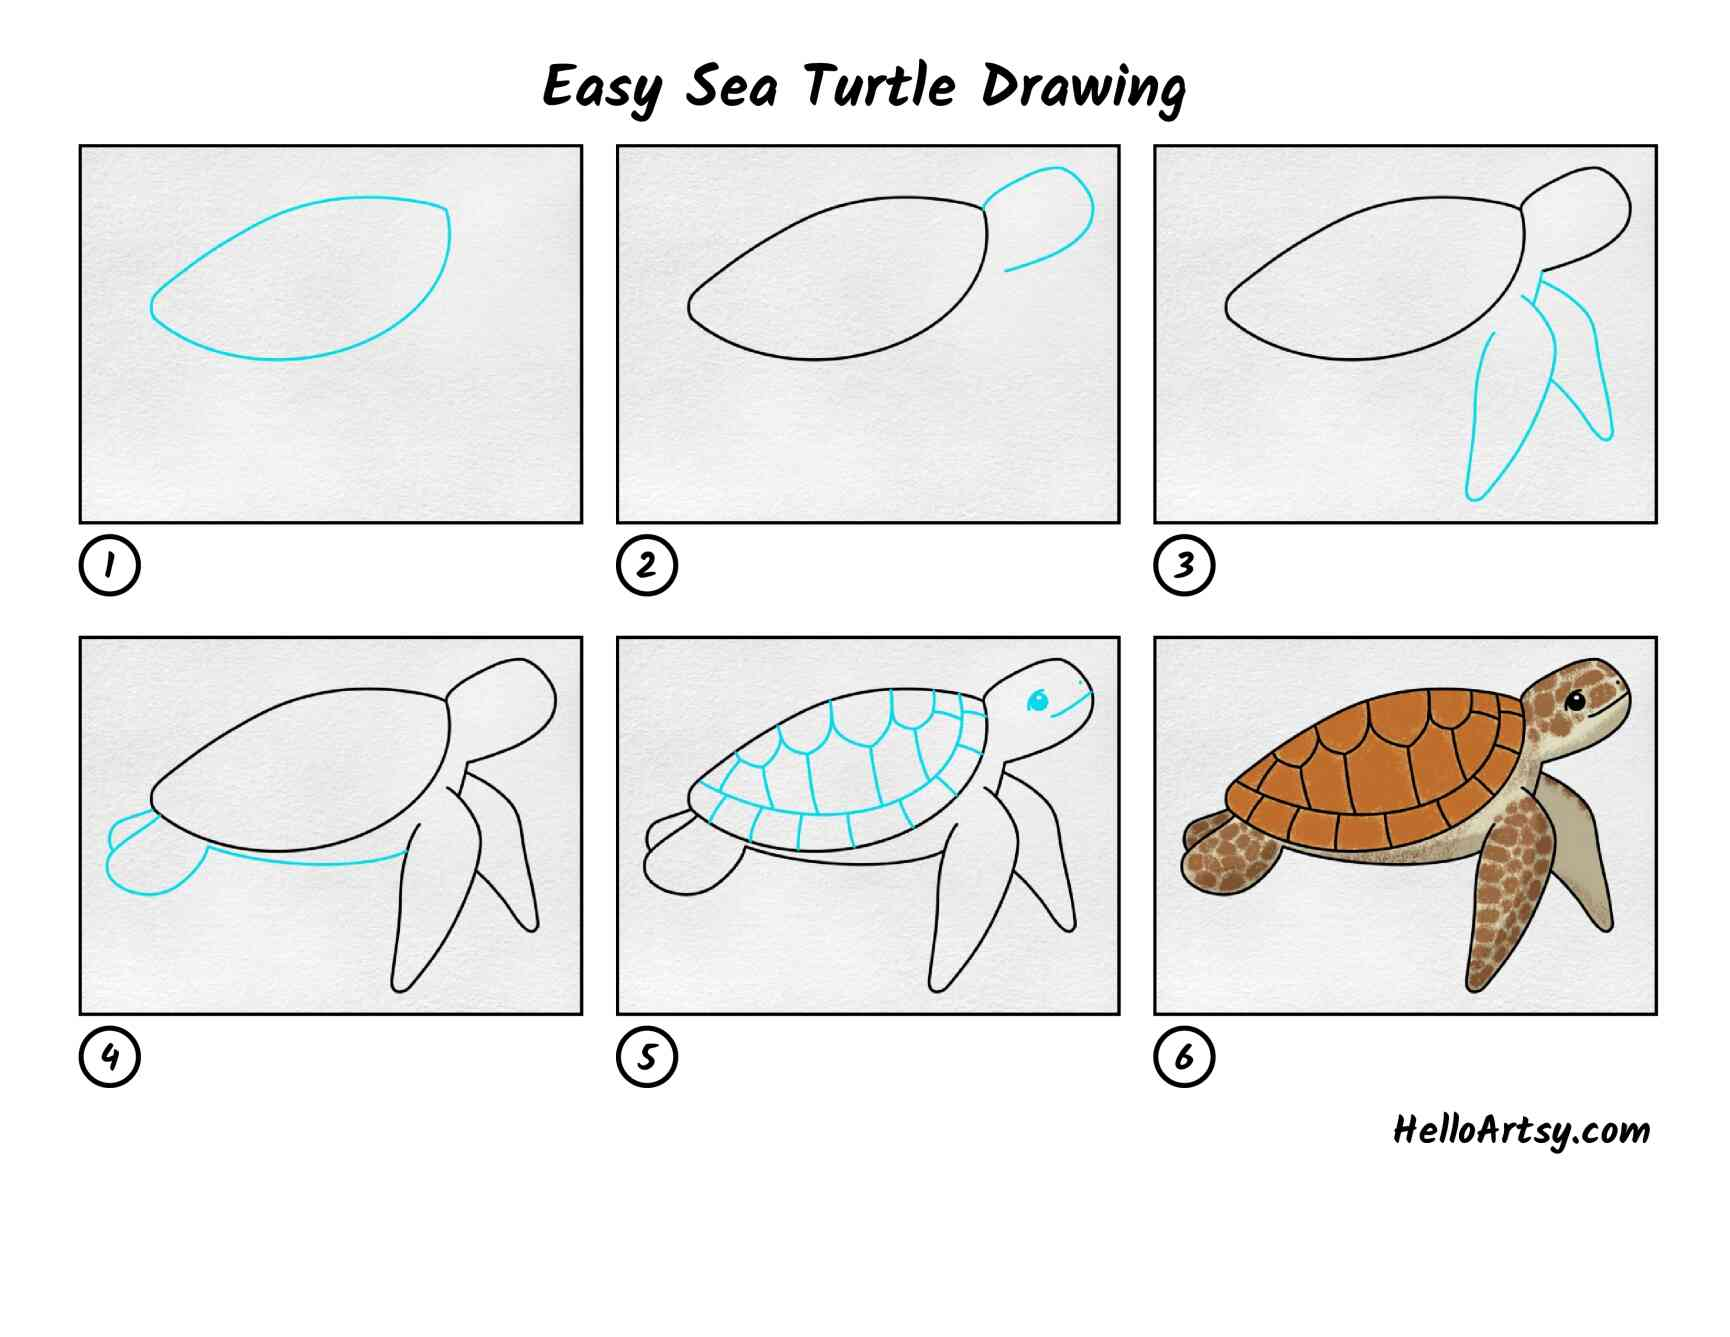 Sea Turtle Drawing Easy: All Steps